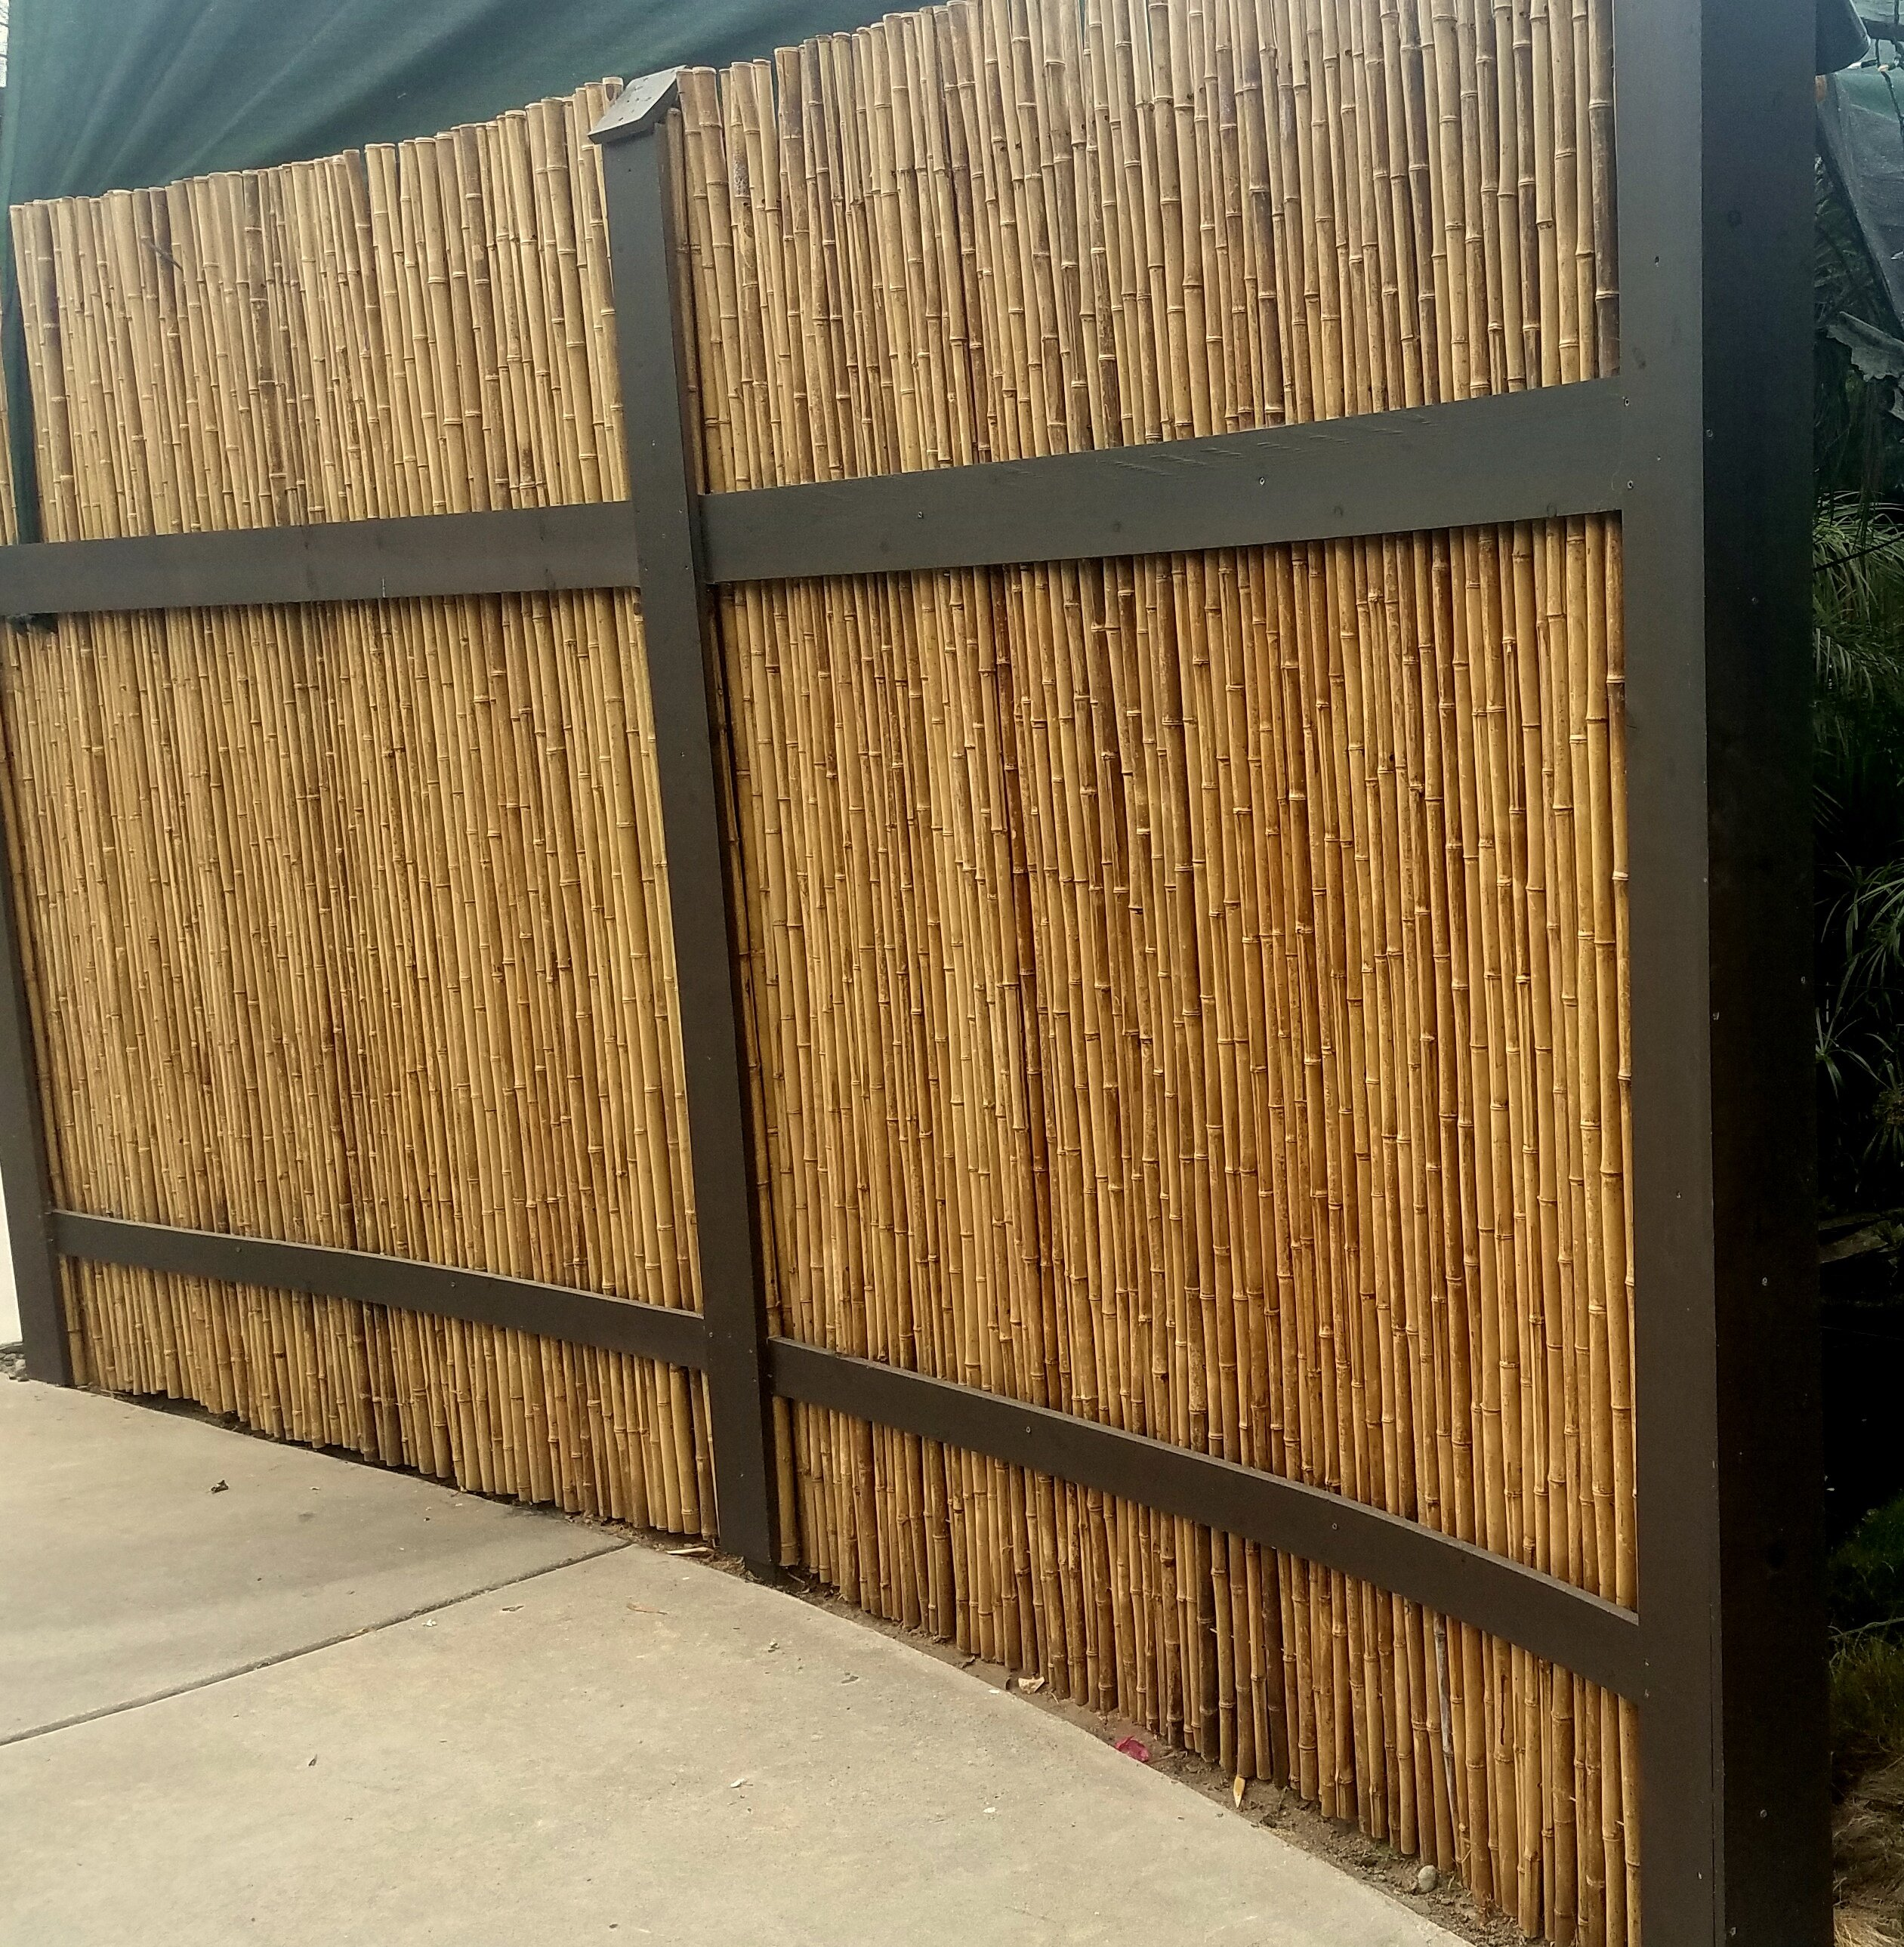 Backyard X Scapes Caramel Bamboo Reed Fence Panel Reviews Wayfair